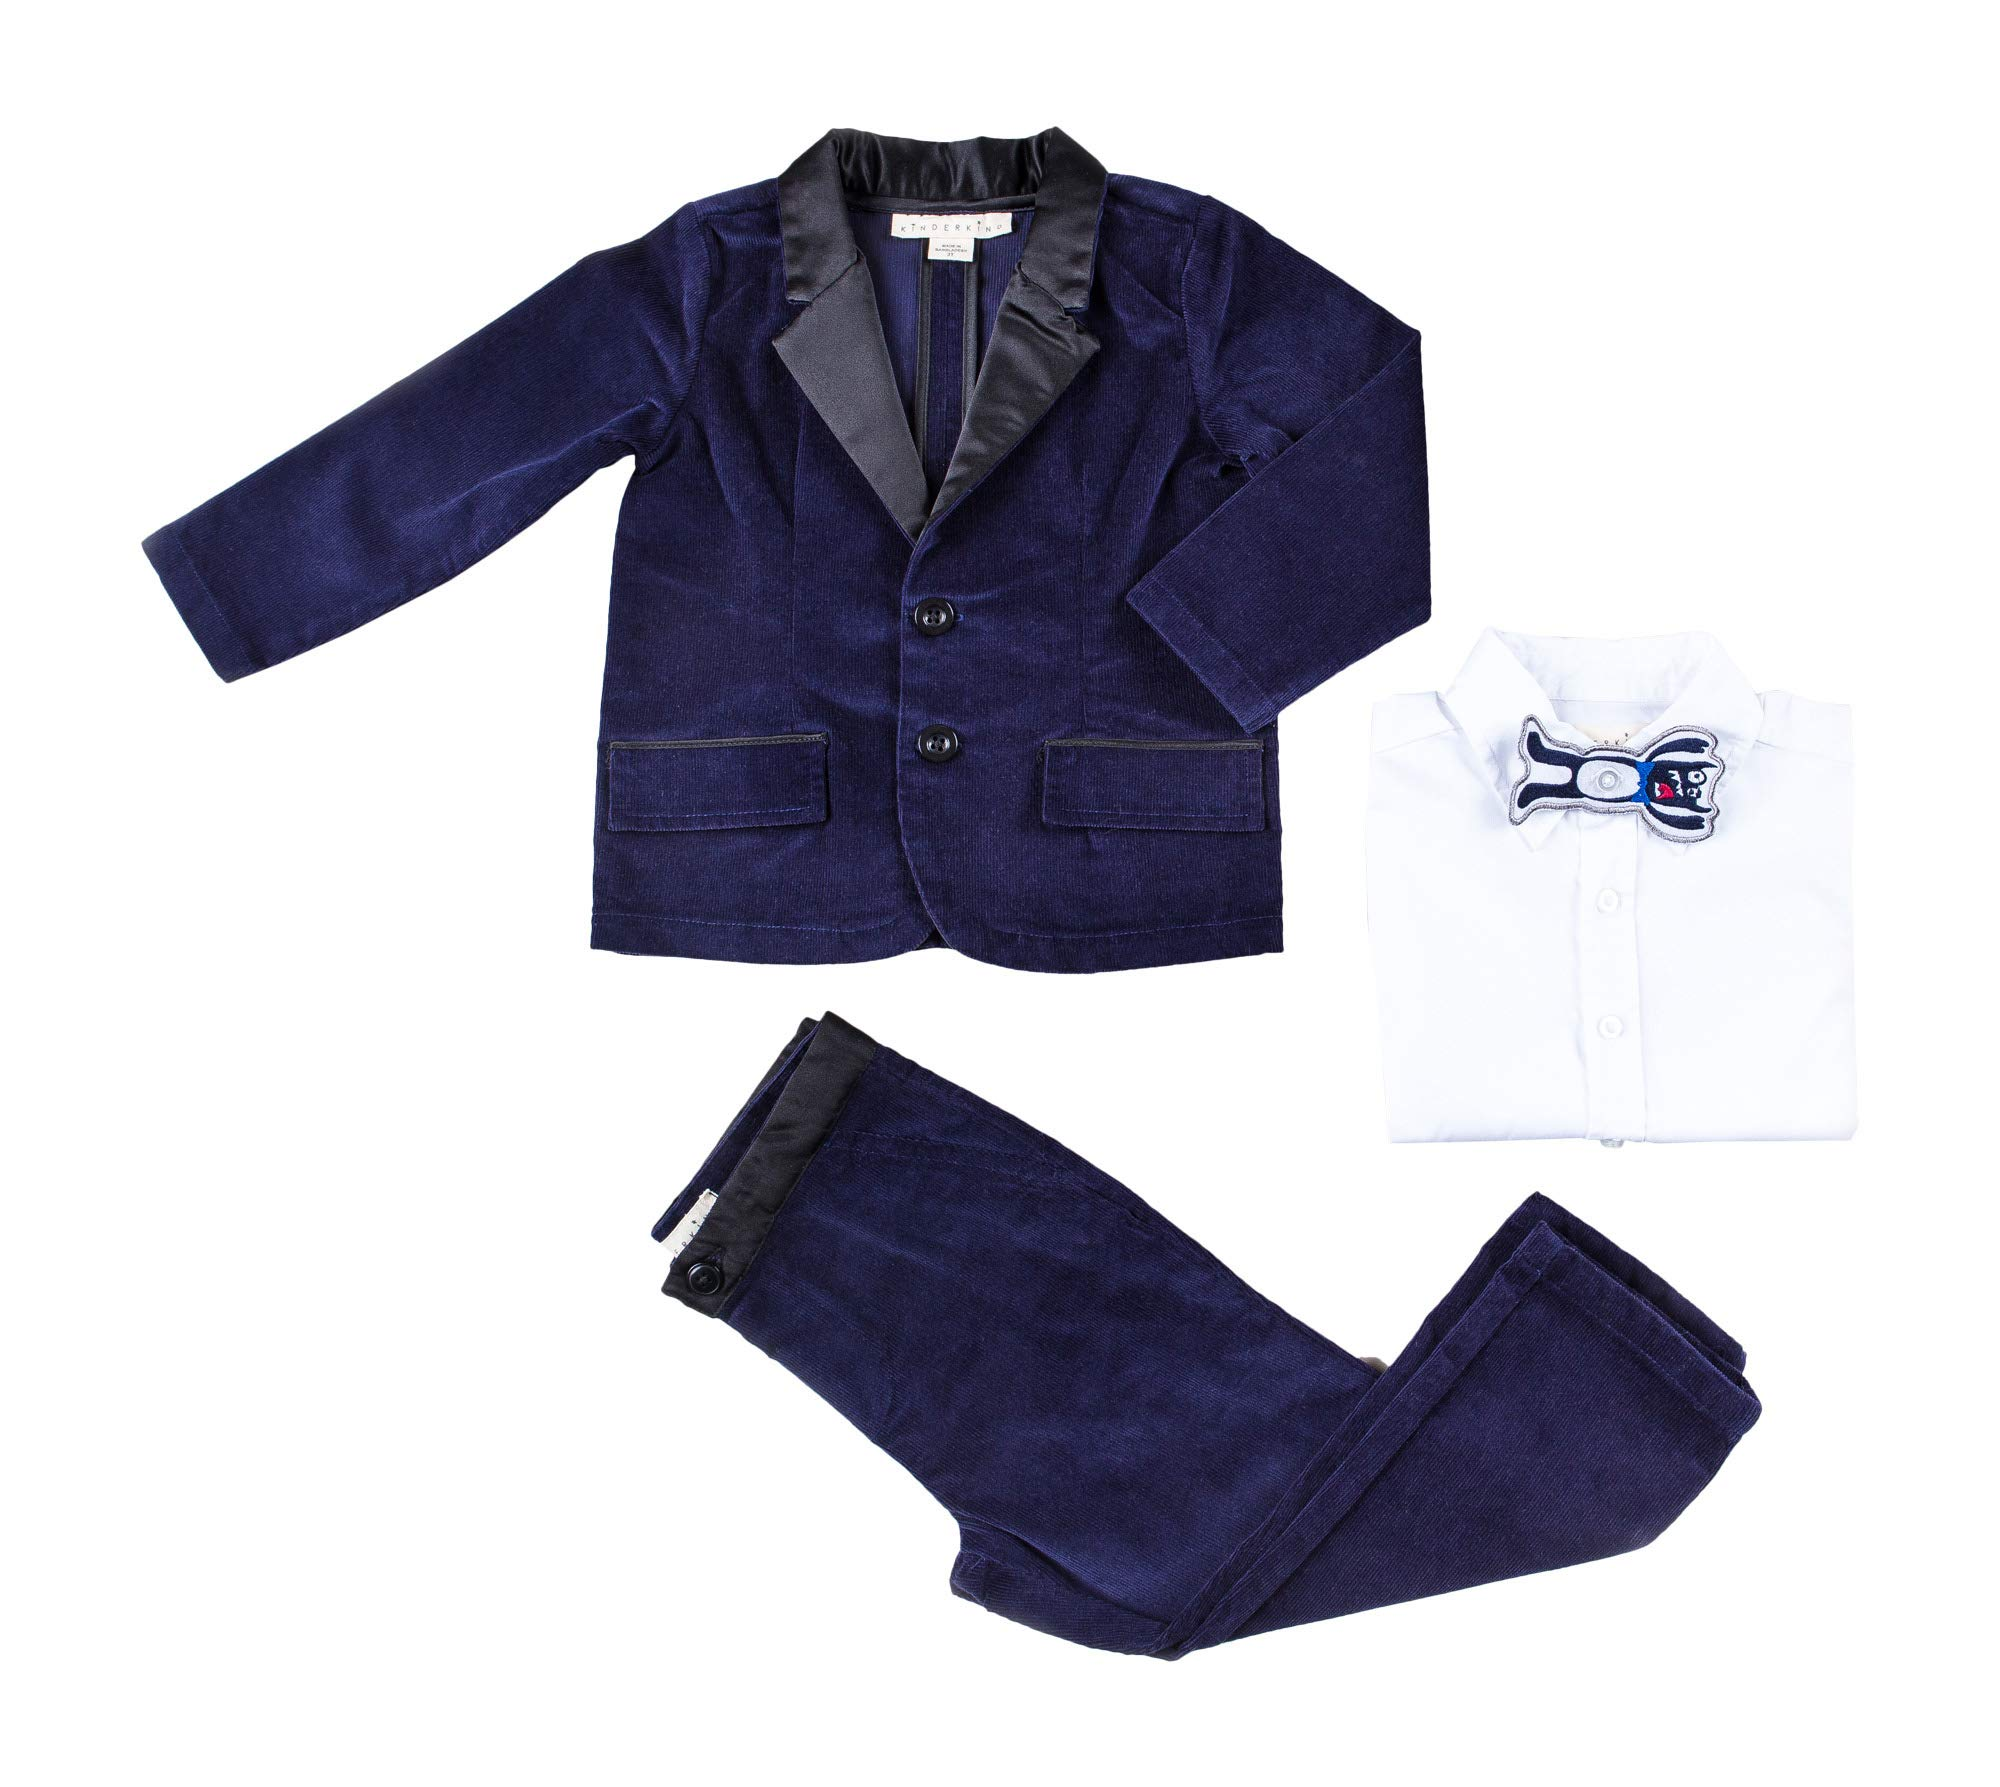 Kinderkind Kids Toddler Boy 3 Piece Corduroy Jacket Set with Monster Bow Tie: Sizes 2T-3T-4T-5T